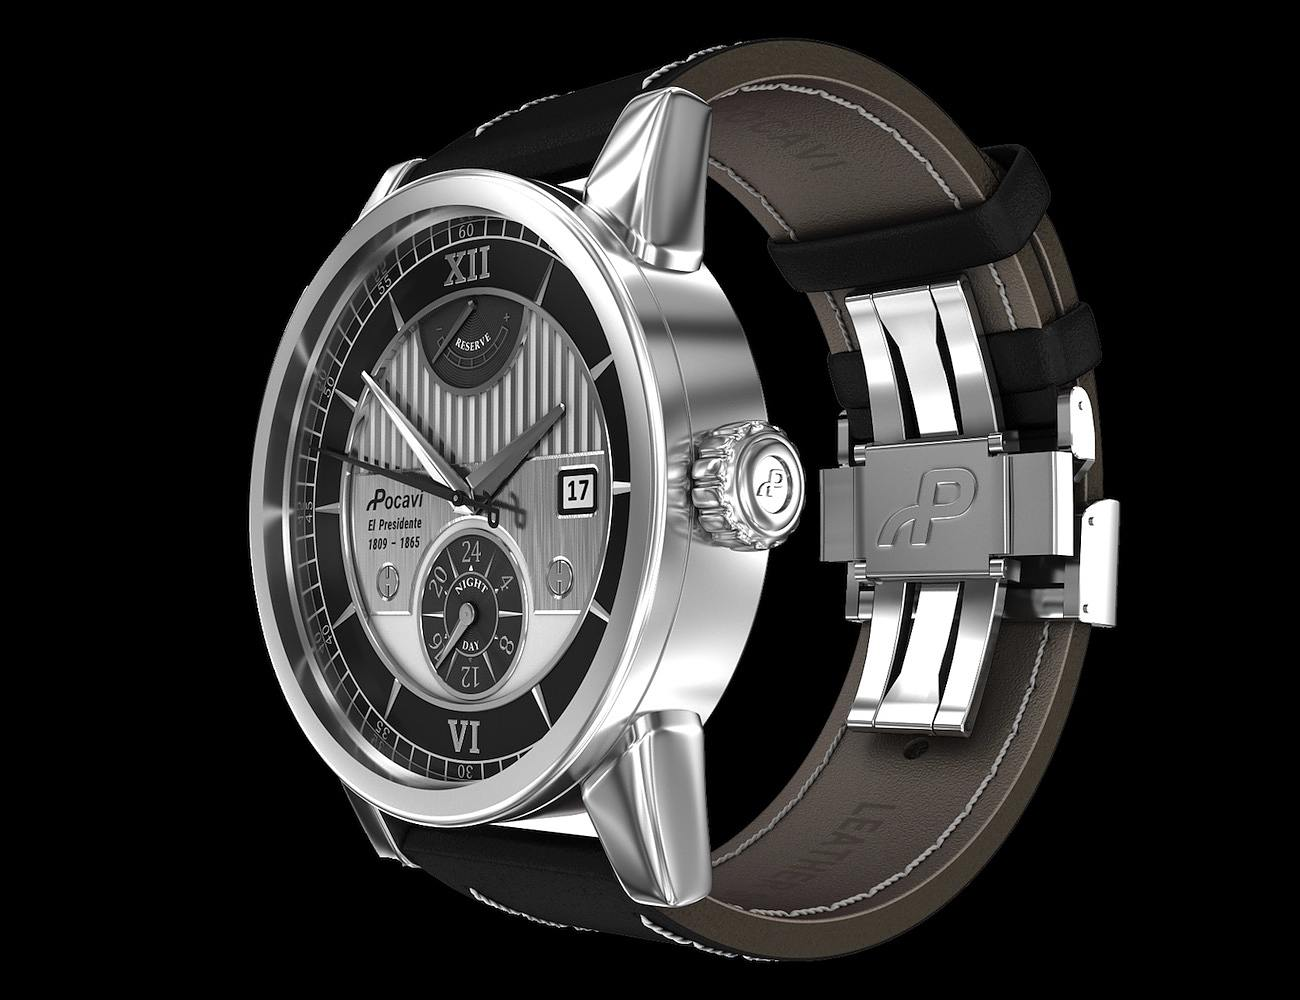 El Presidente – Lincoln Inspired Automatic Timepiece